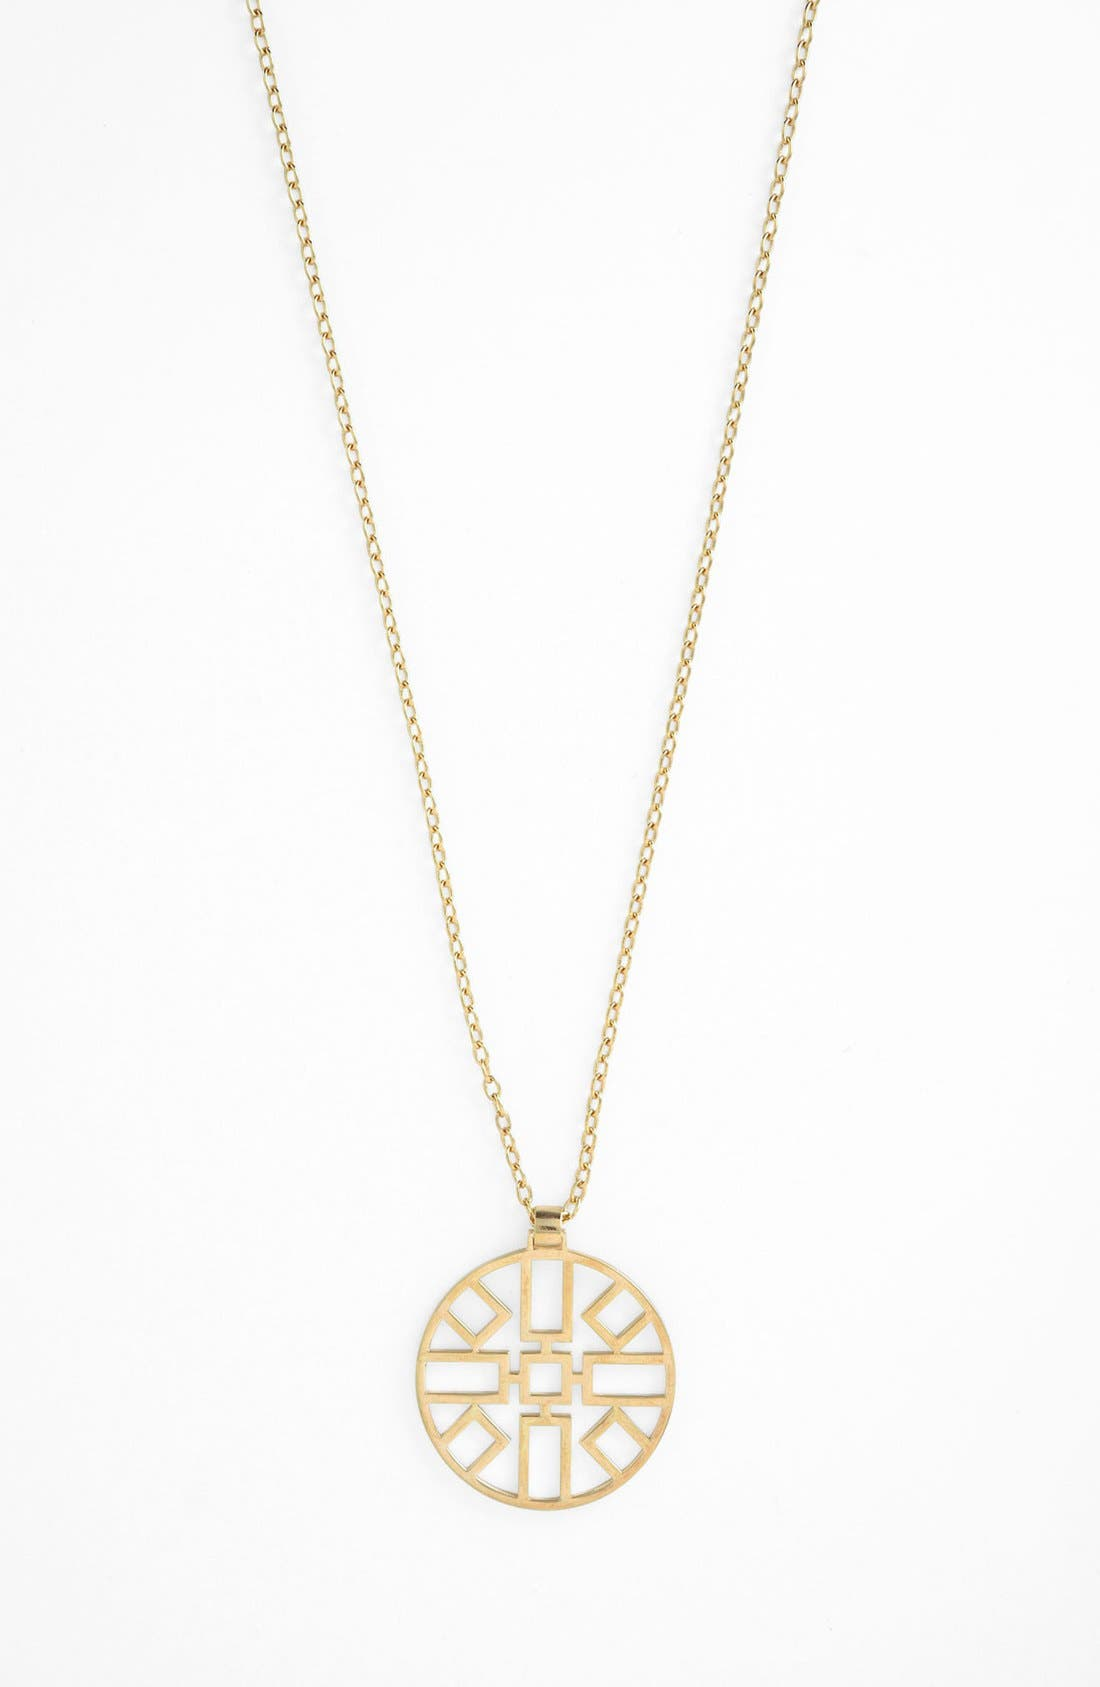 Main Image - Tory Burch 'Jordan' Necklace